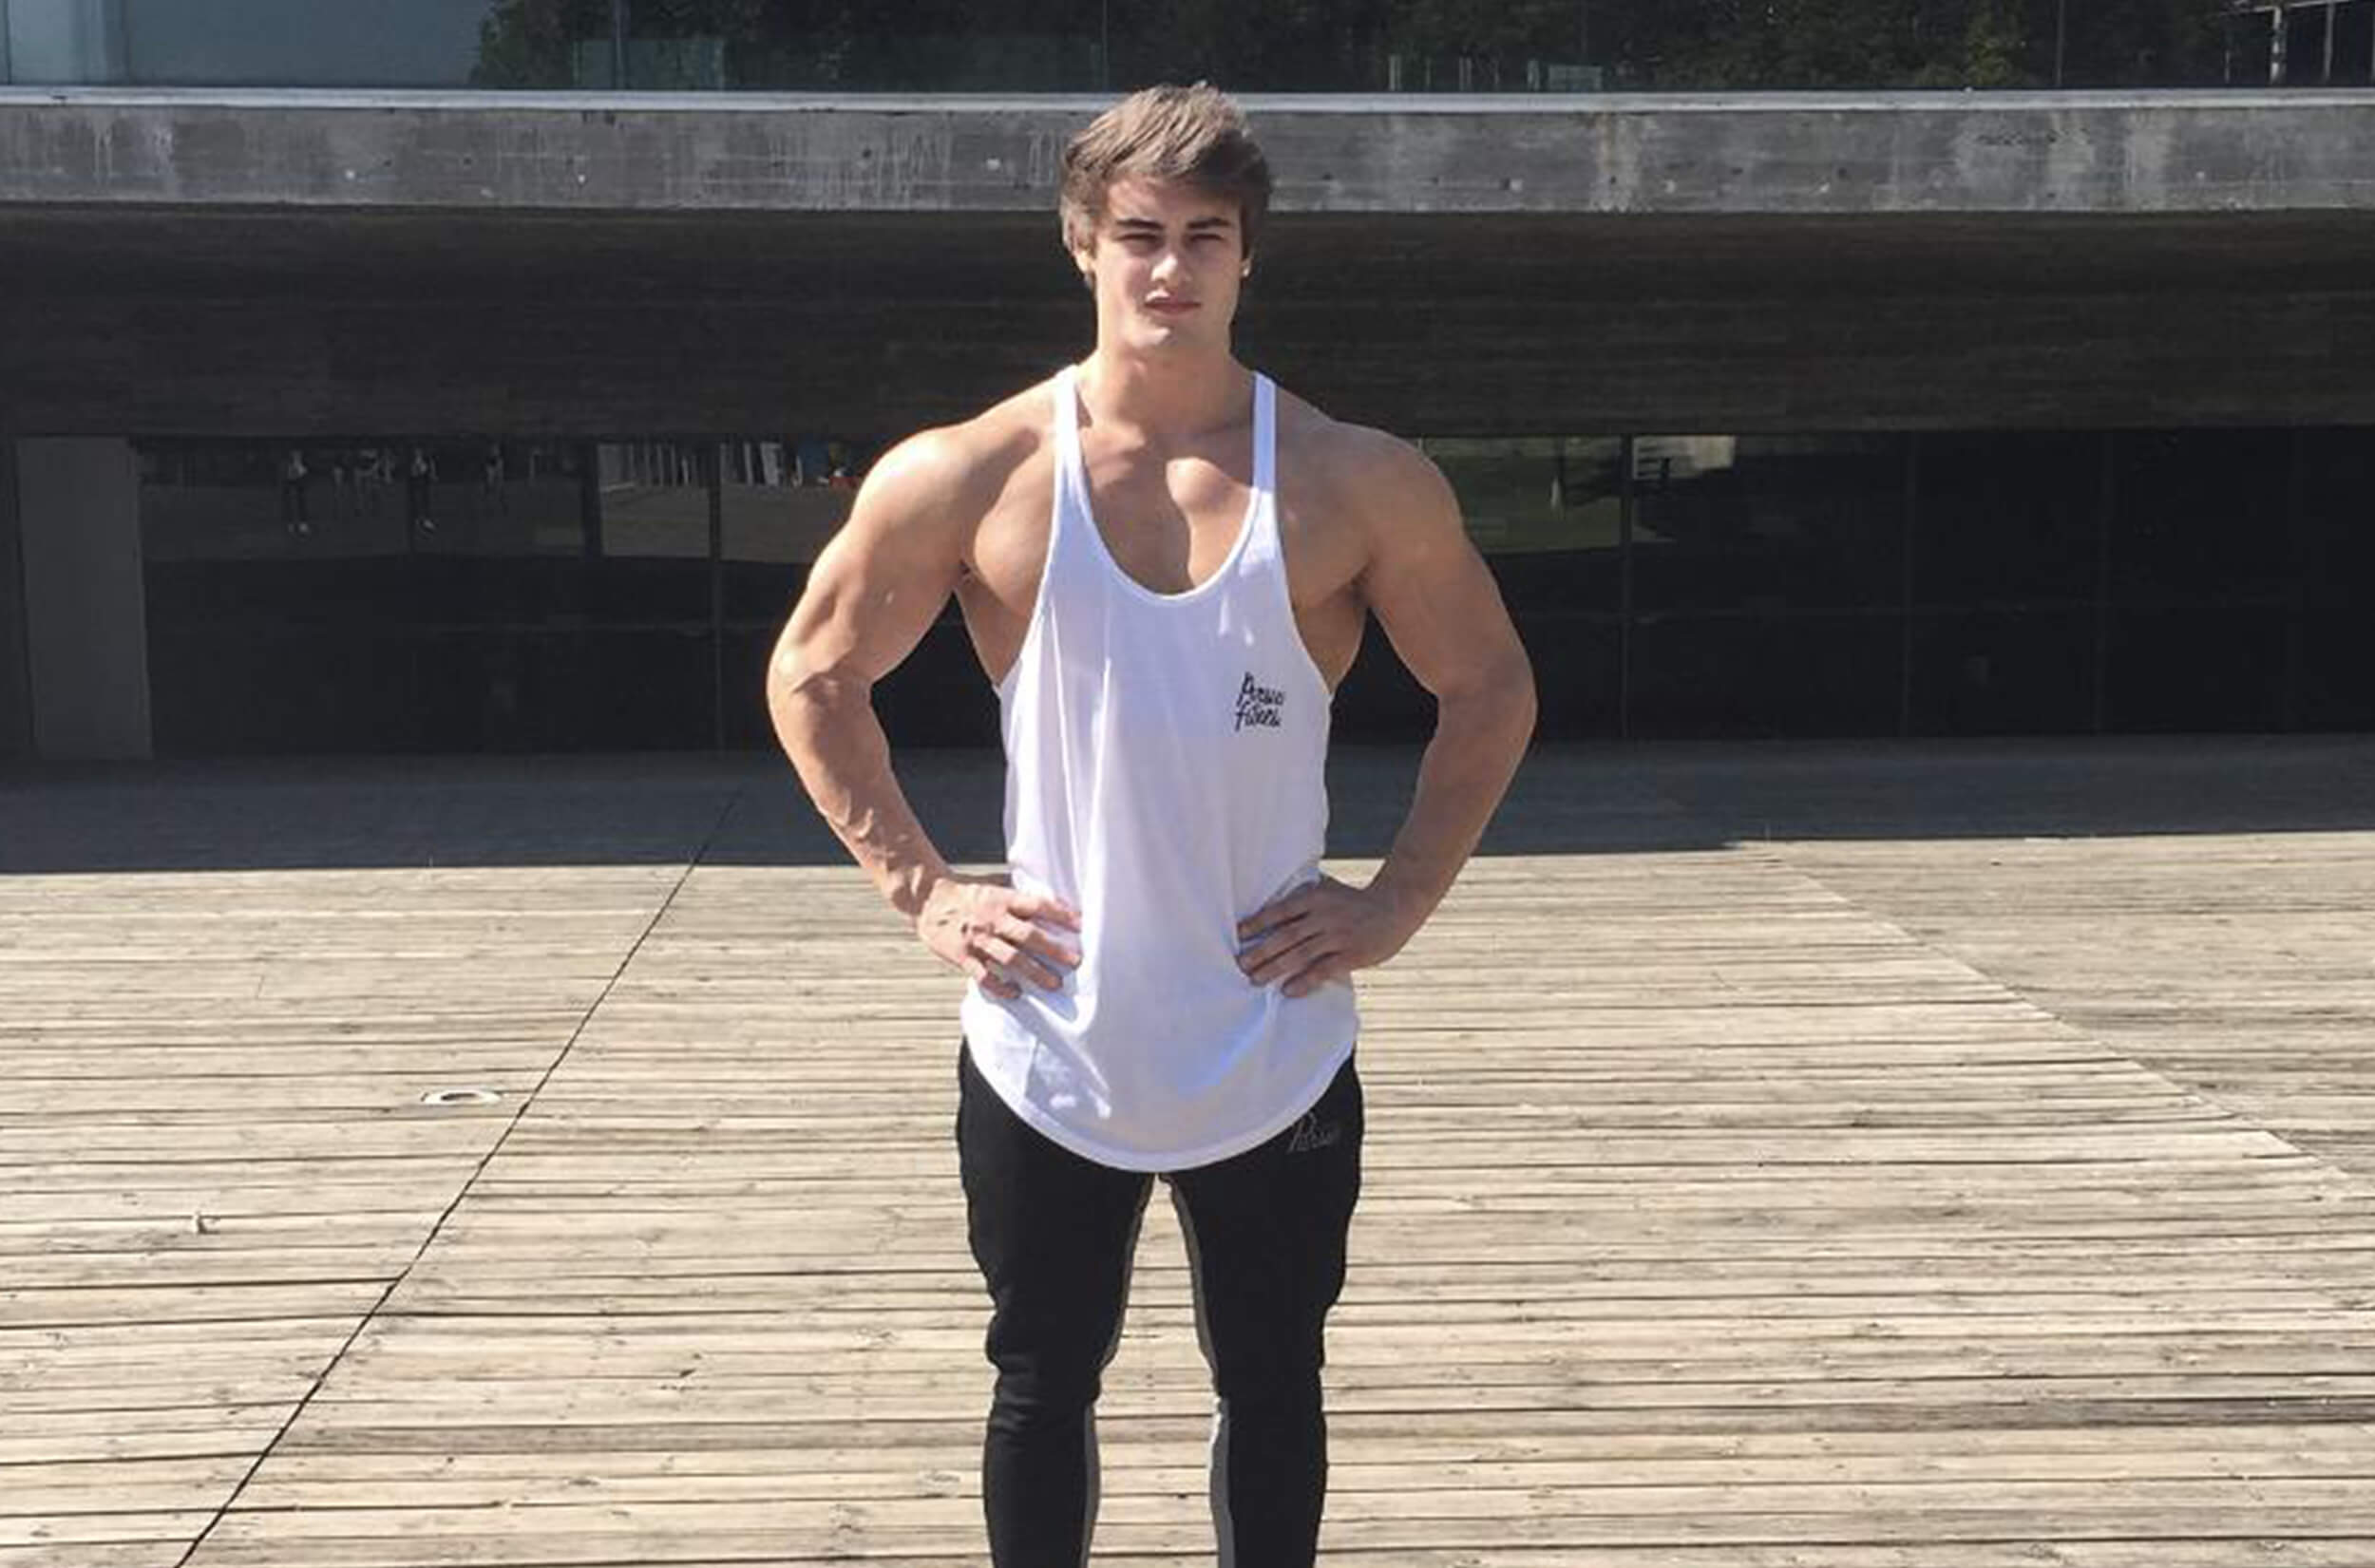 Pursue Fitness Ft. Jeff Seid